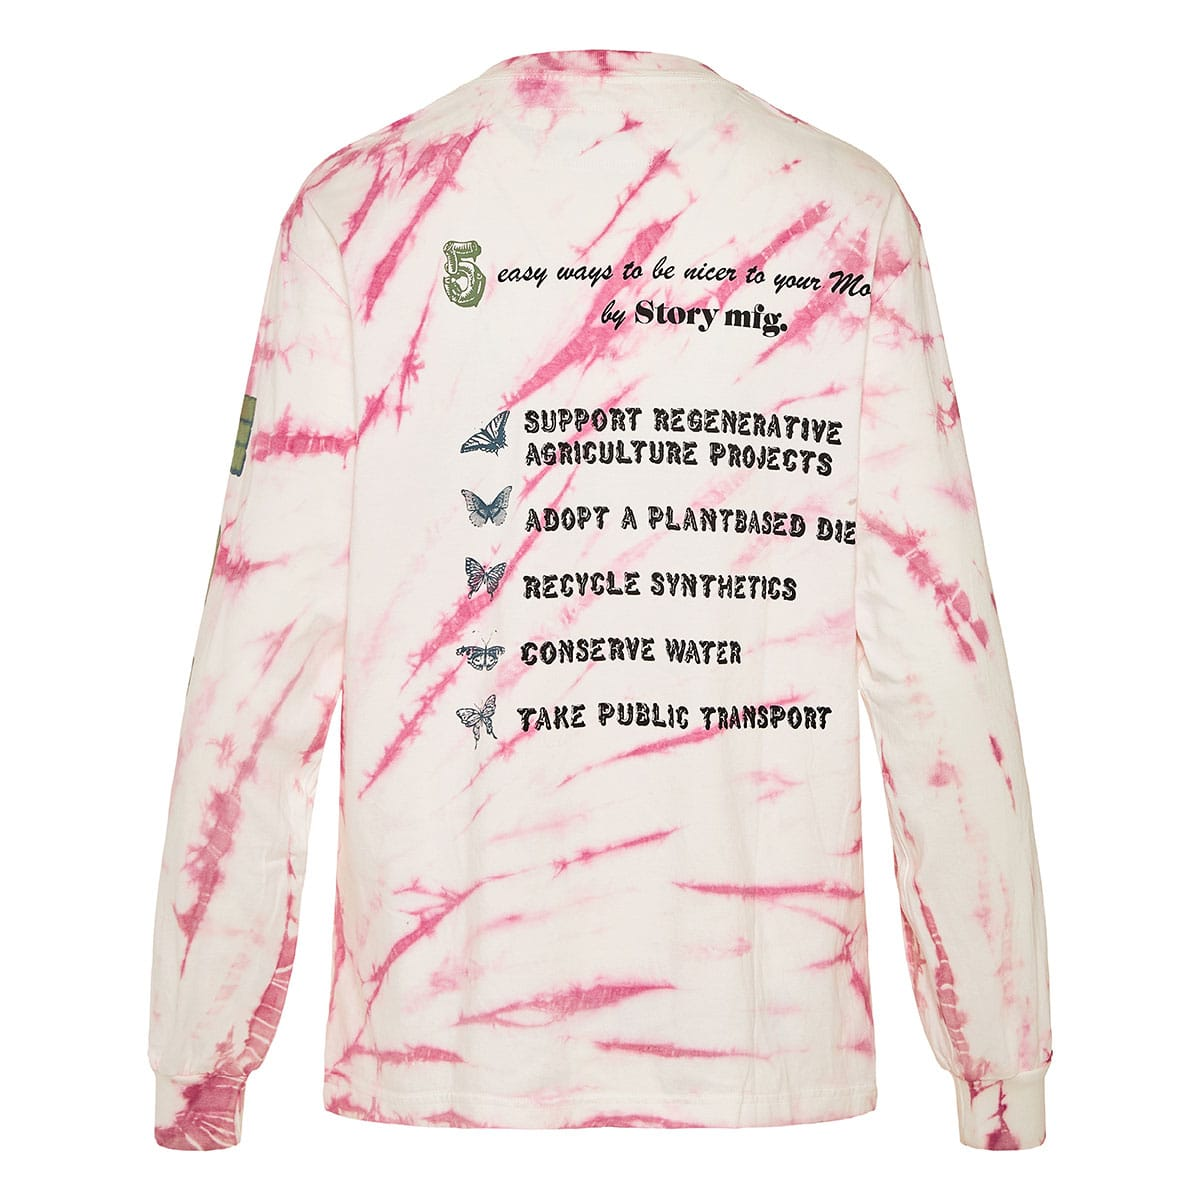 Grateful tie-dye printed sweatshirt